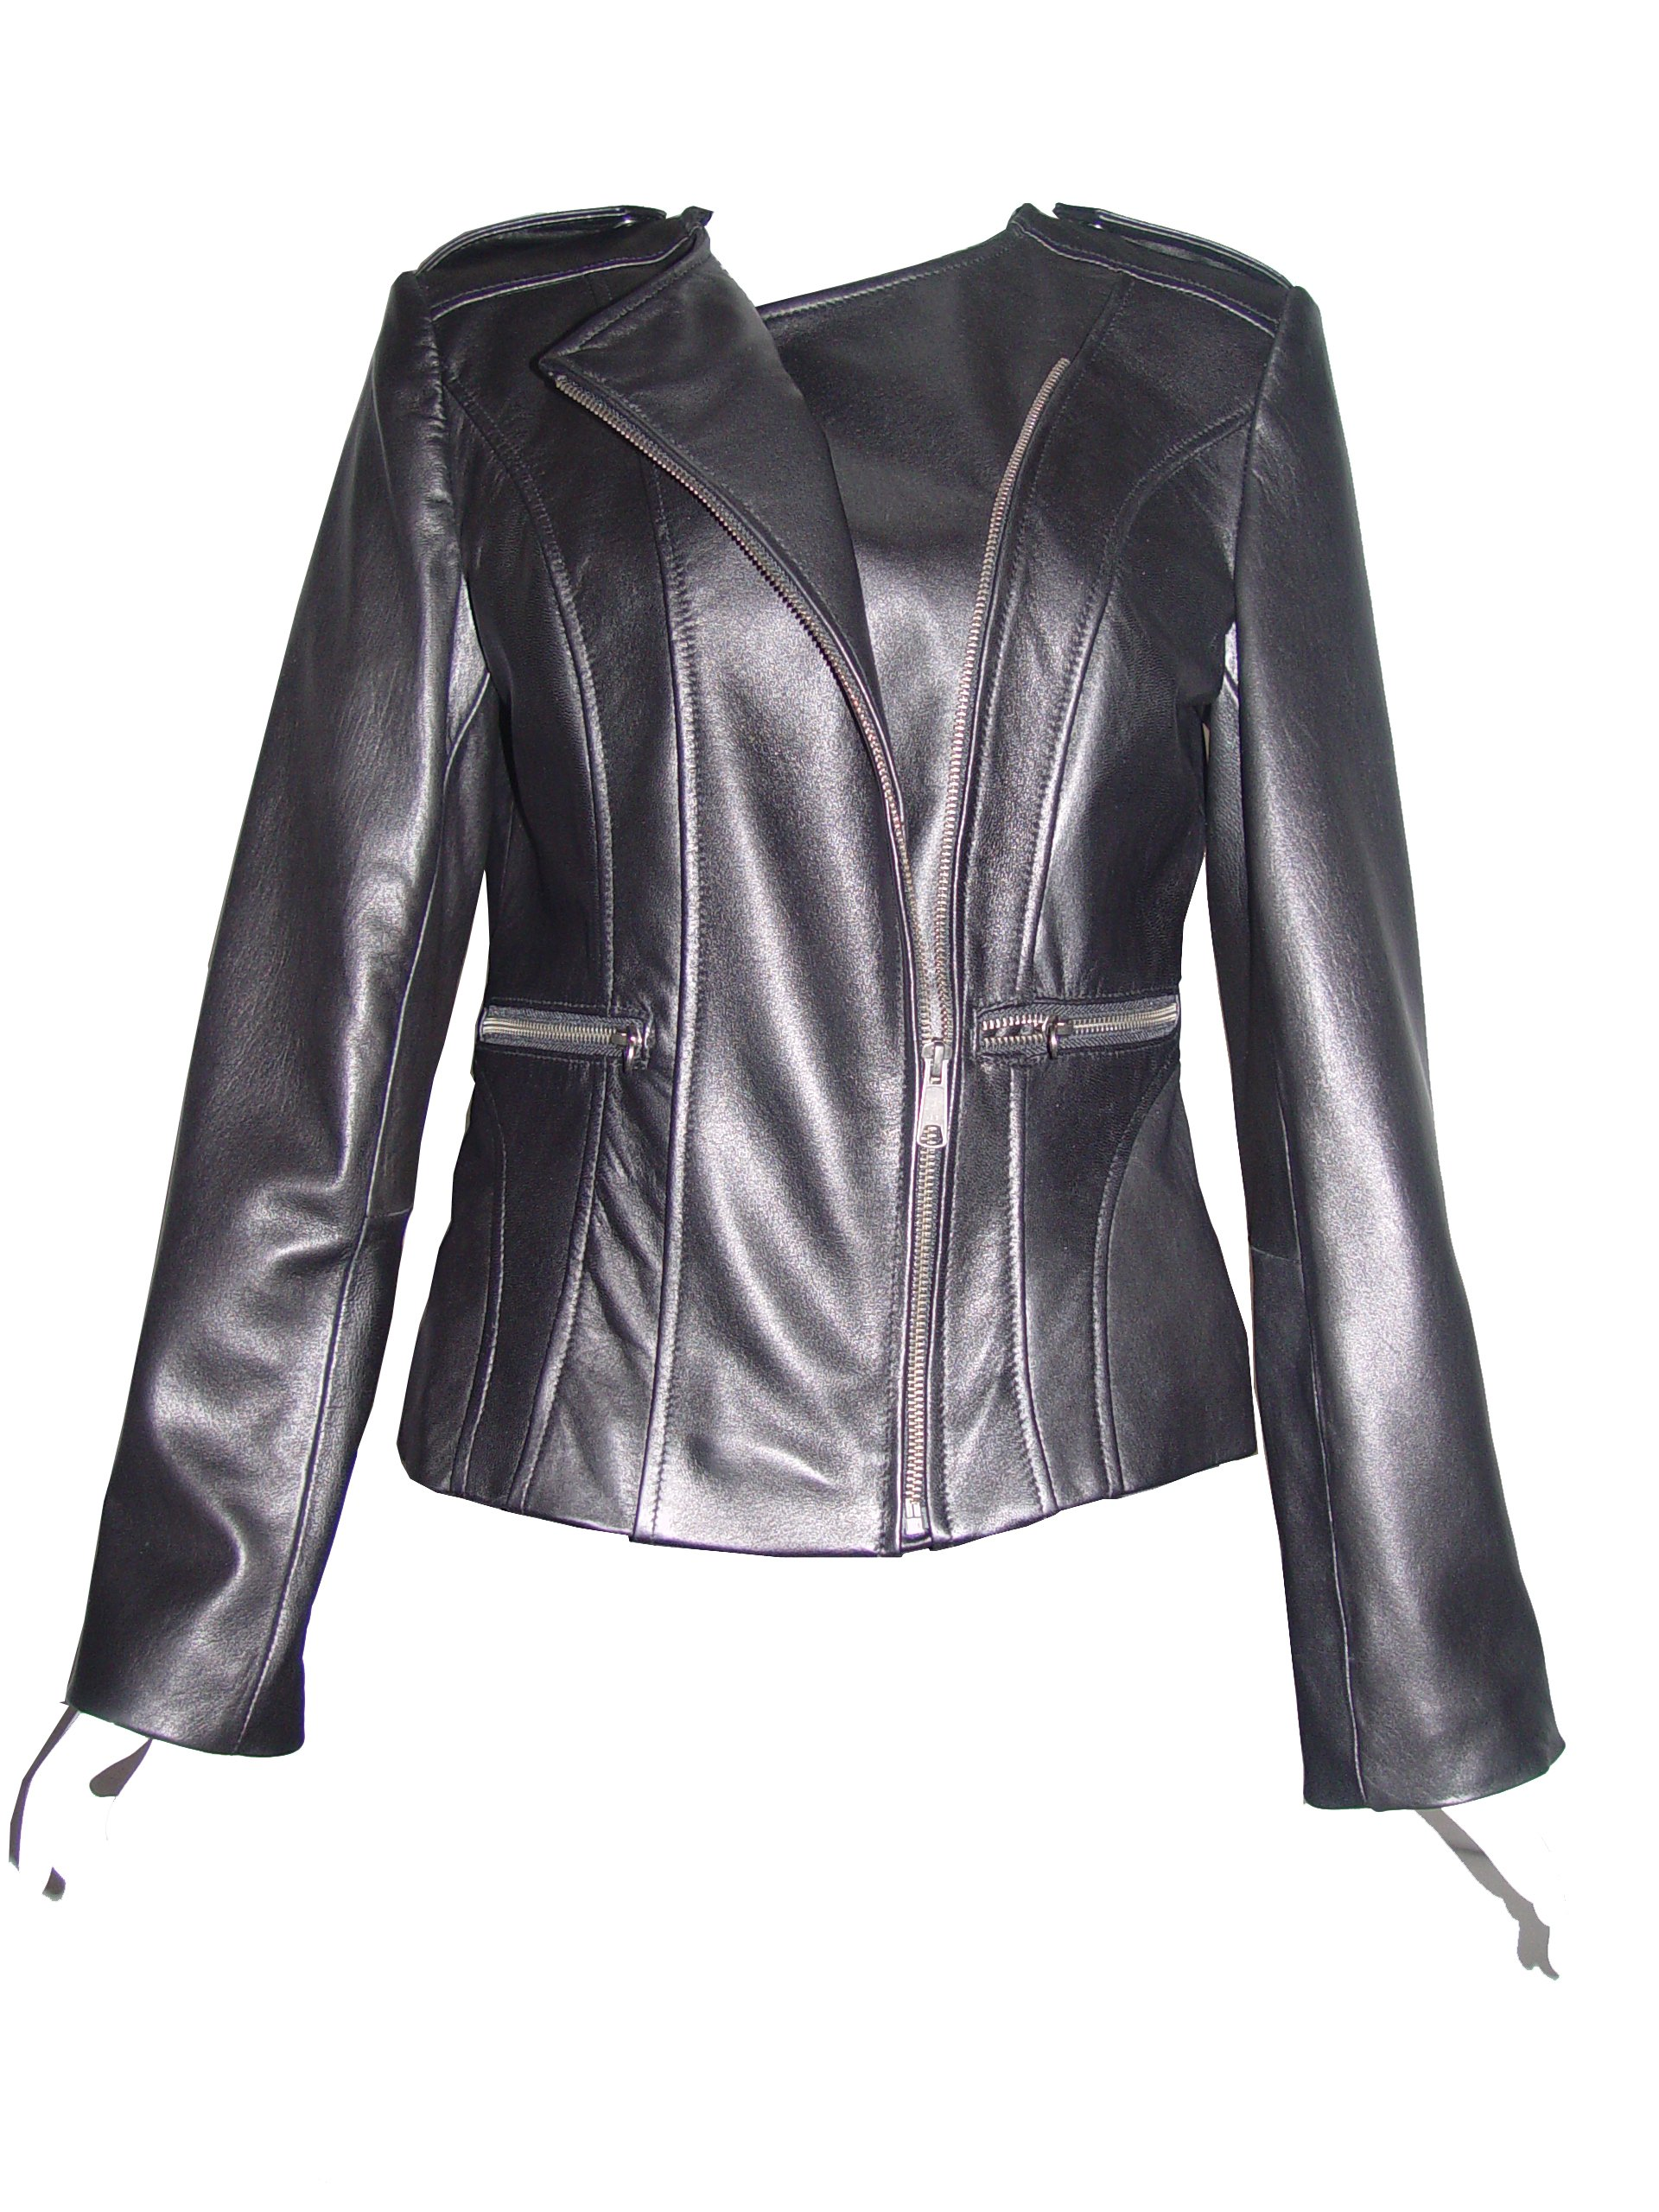 Nettailor 4069 Leather Collarless Motorcycle Jackets Womens Light lamb